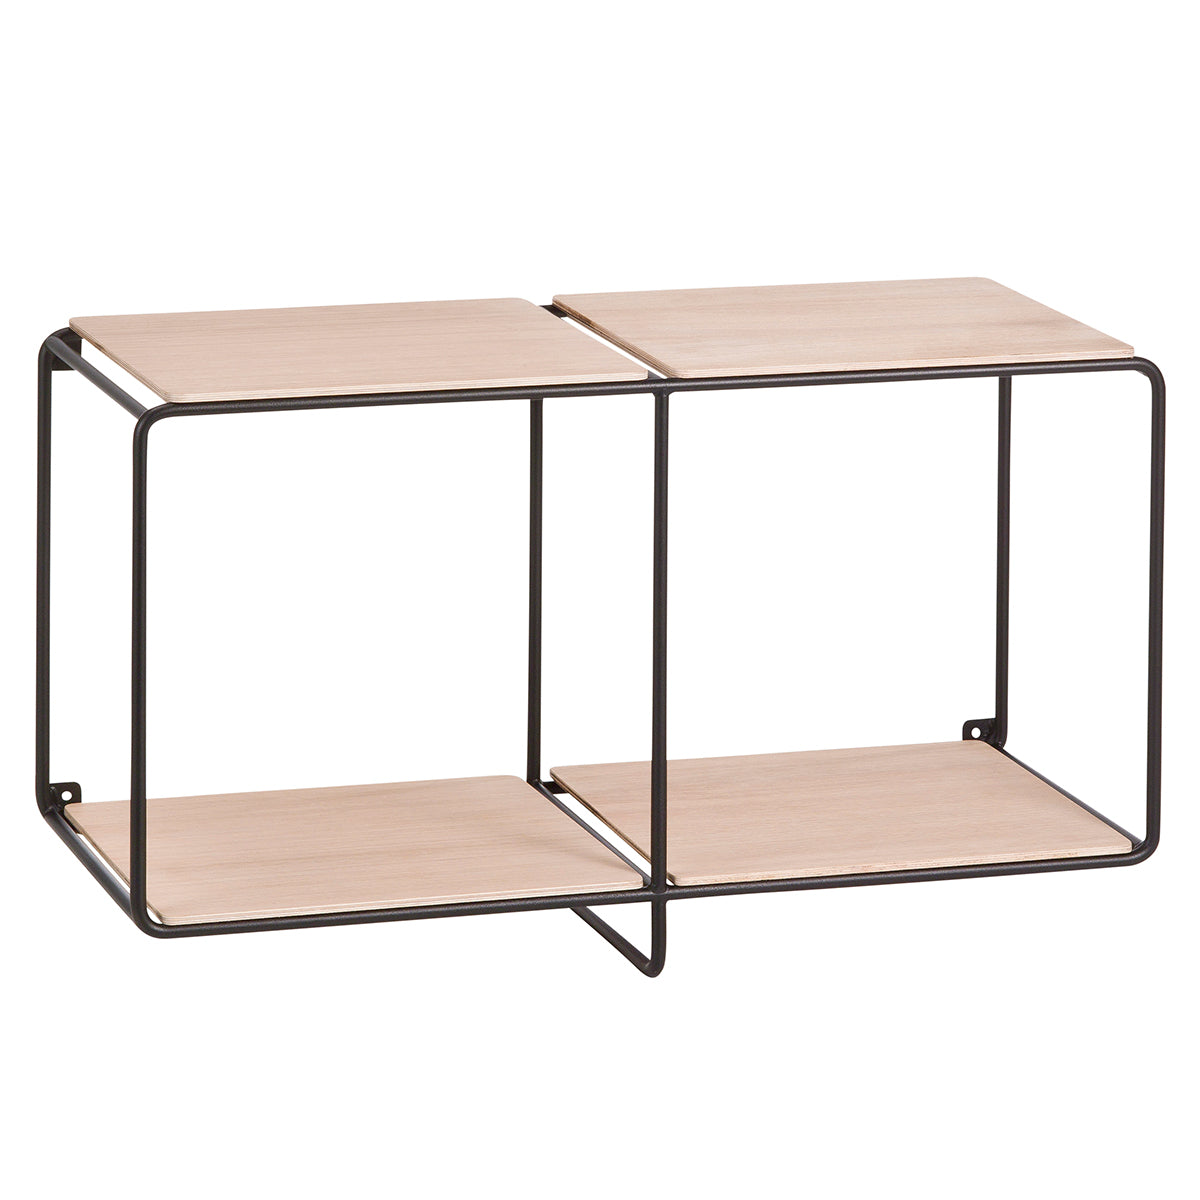 Anywhere Hangers 1 x 2 (4 Shelves) - Korridor - Do Shop